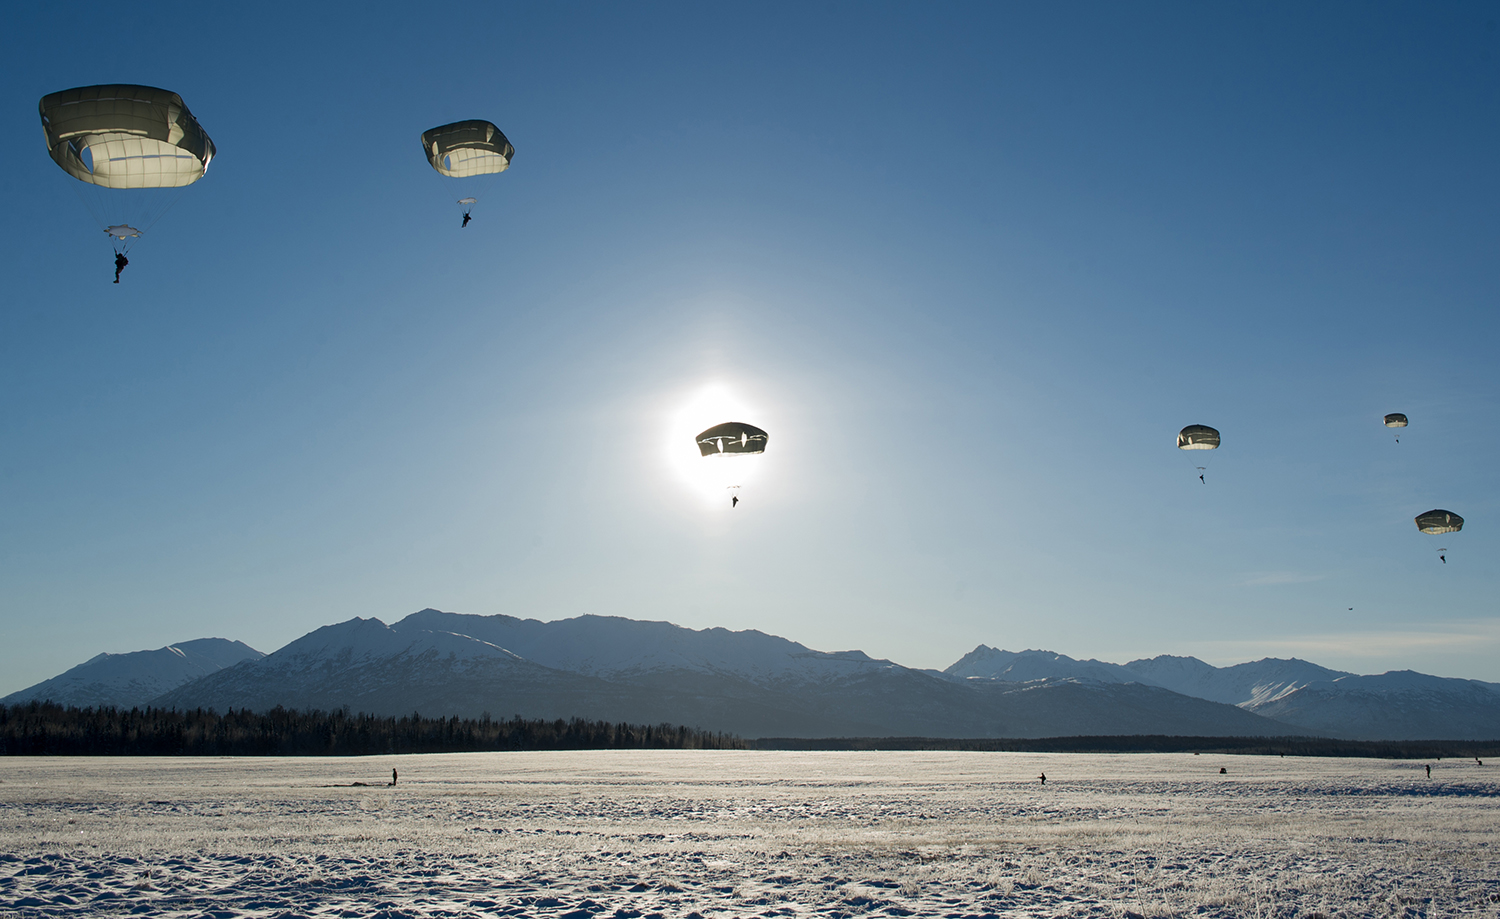 Paratroopers assigned to the 4th Infantry Brigade Combat Team (Airborne), 25th Infantry Division, U.S. Army Alaska, conduct an airborne operation on Malemute drop zone after jumping from CH-47 Chinook helicopters at Joint Base Elmendorf-Richardson, Alaska, Nov. 1, 2018. (Justin Connaher/Air Force)